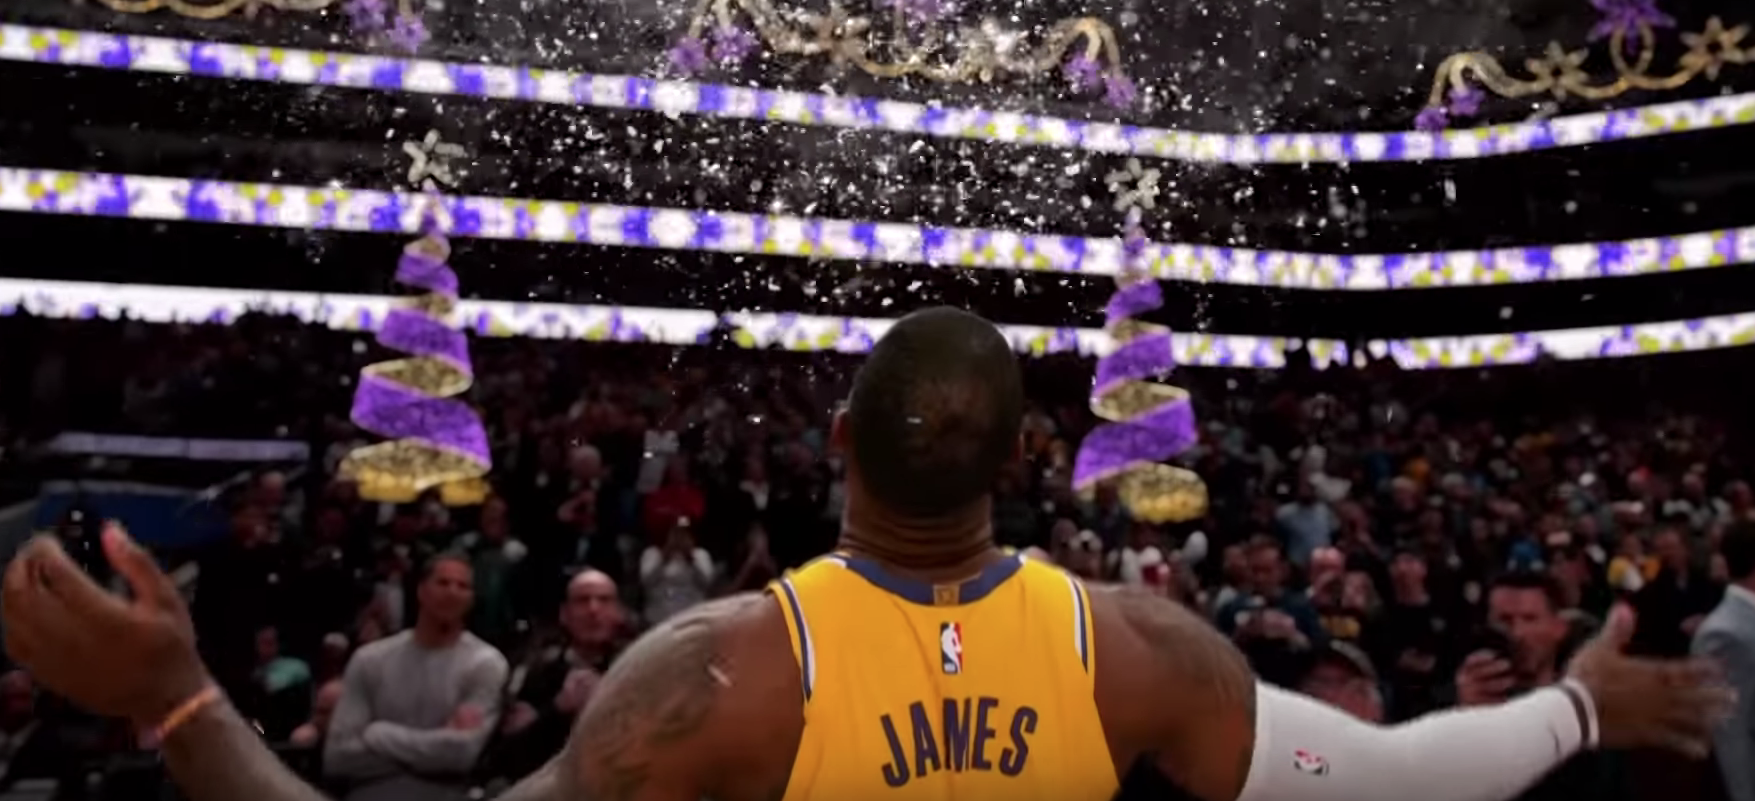 Basketball Courts Are Turned To Ice In This Great Ad For The NBA